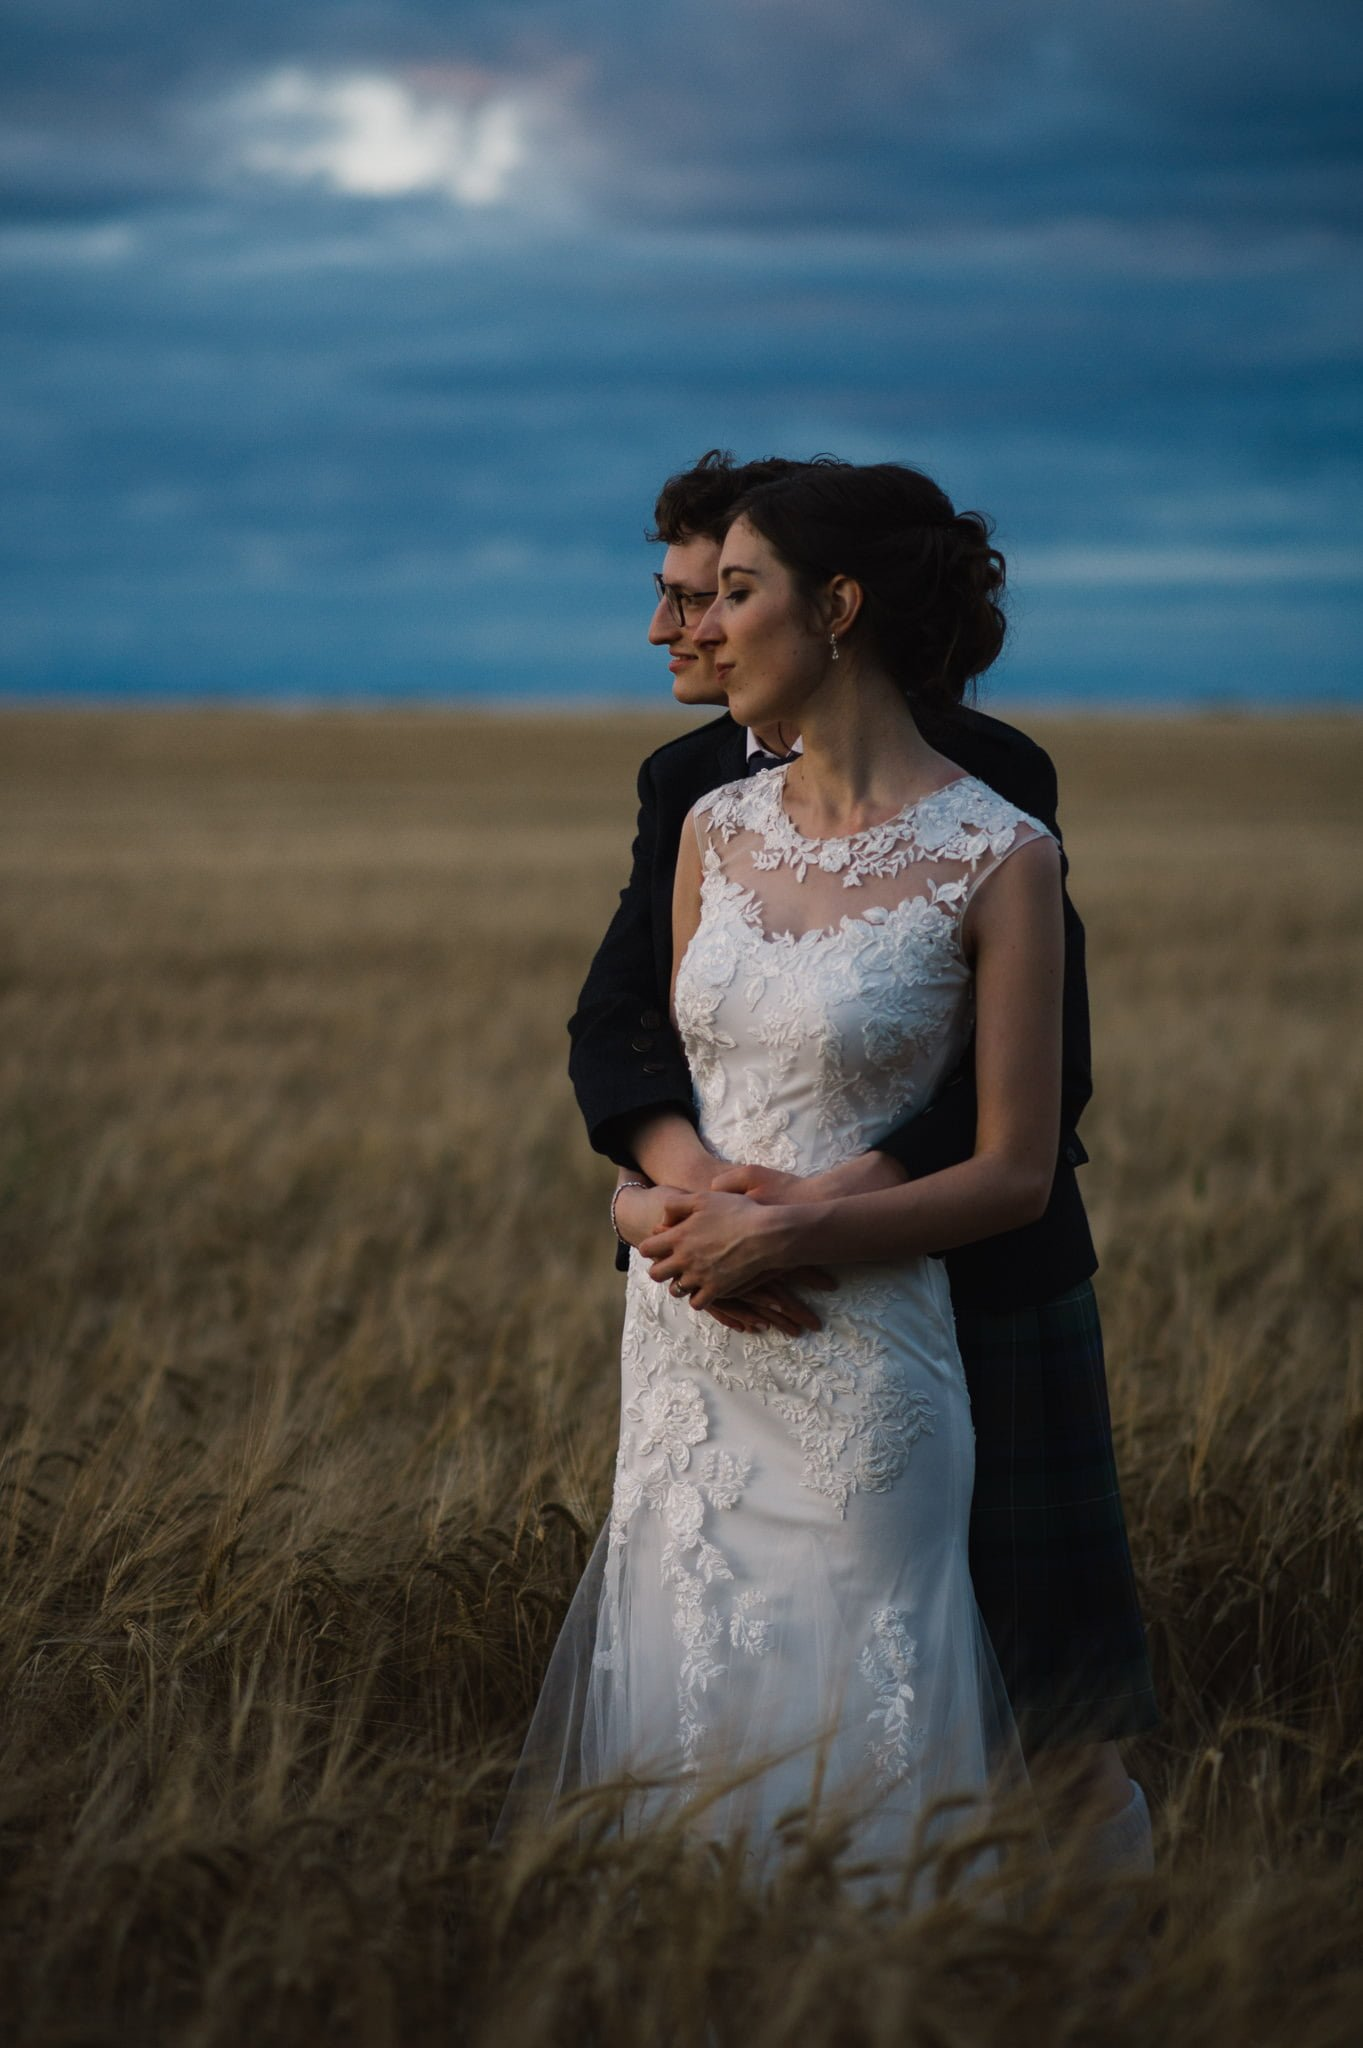 couple in barley field with evening skies